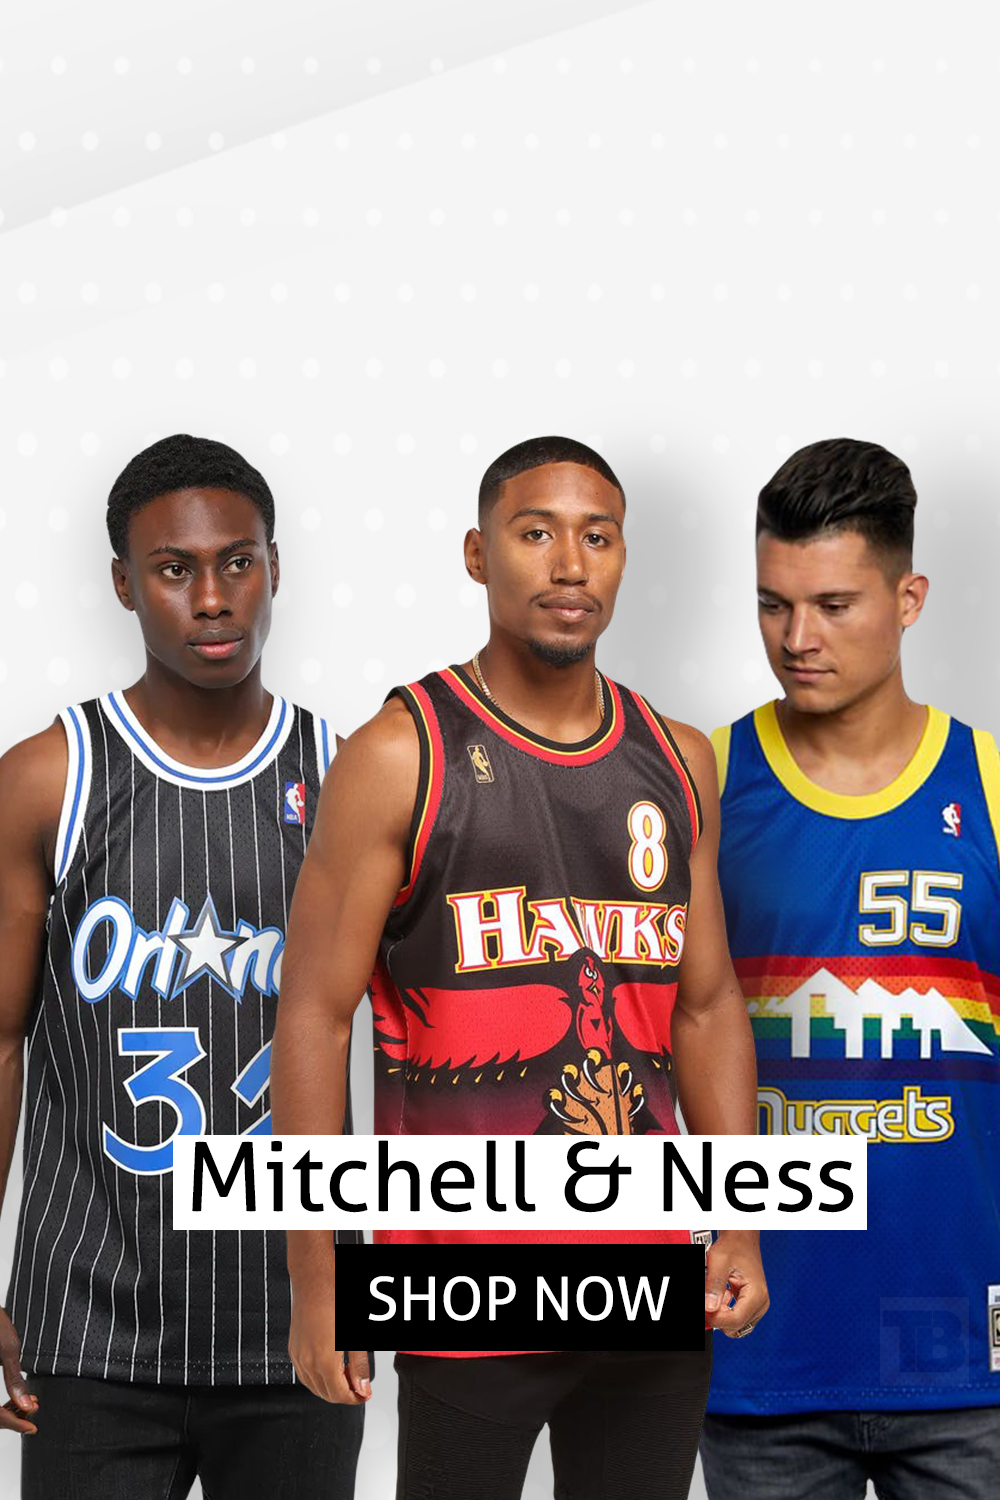 Mitchell and ness jerseys Pinterest Collection Post